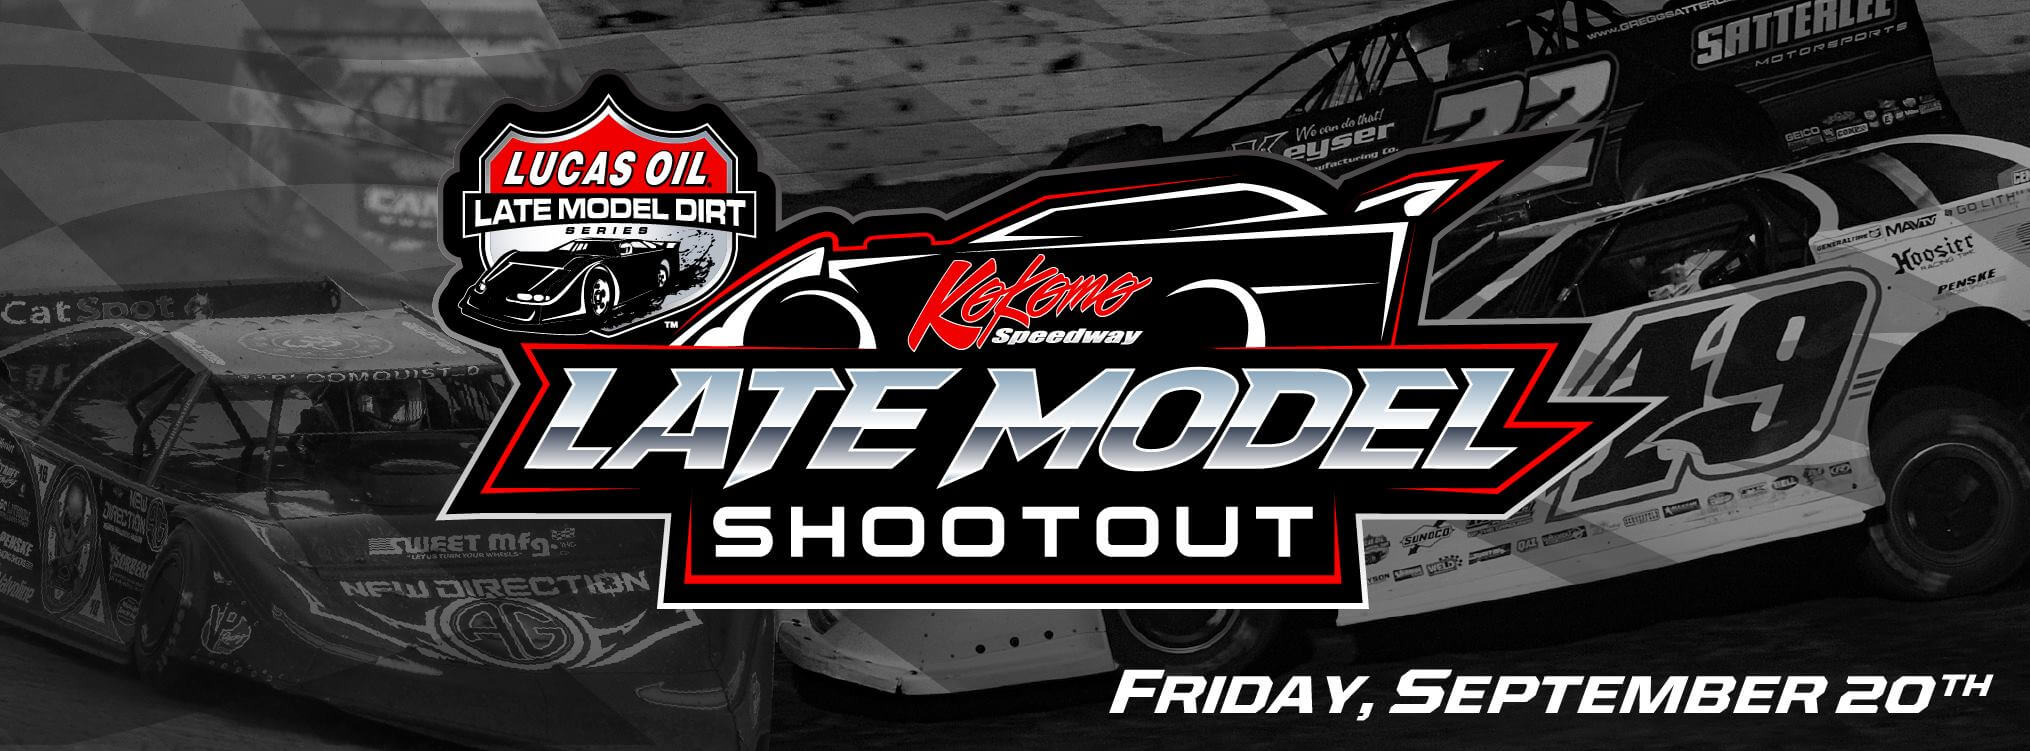 Kokomo Speedway Late Model Shootout